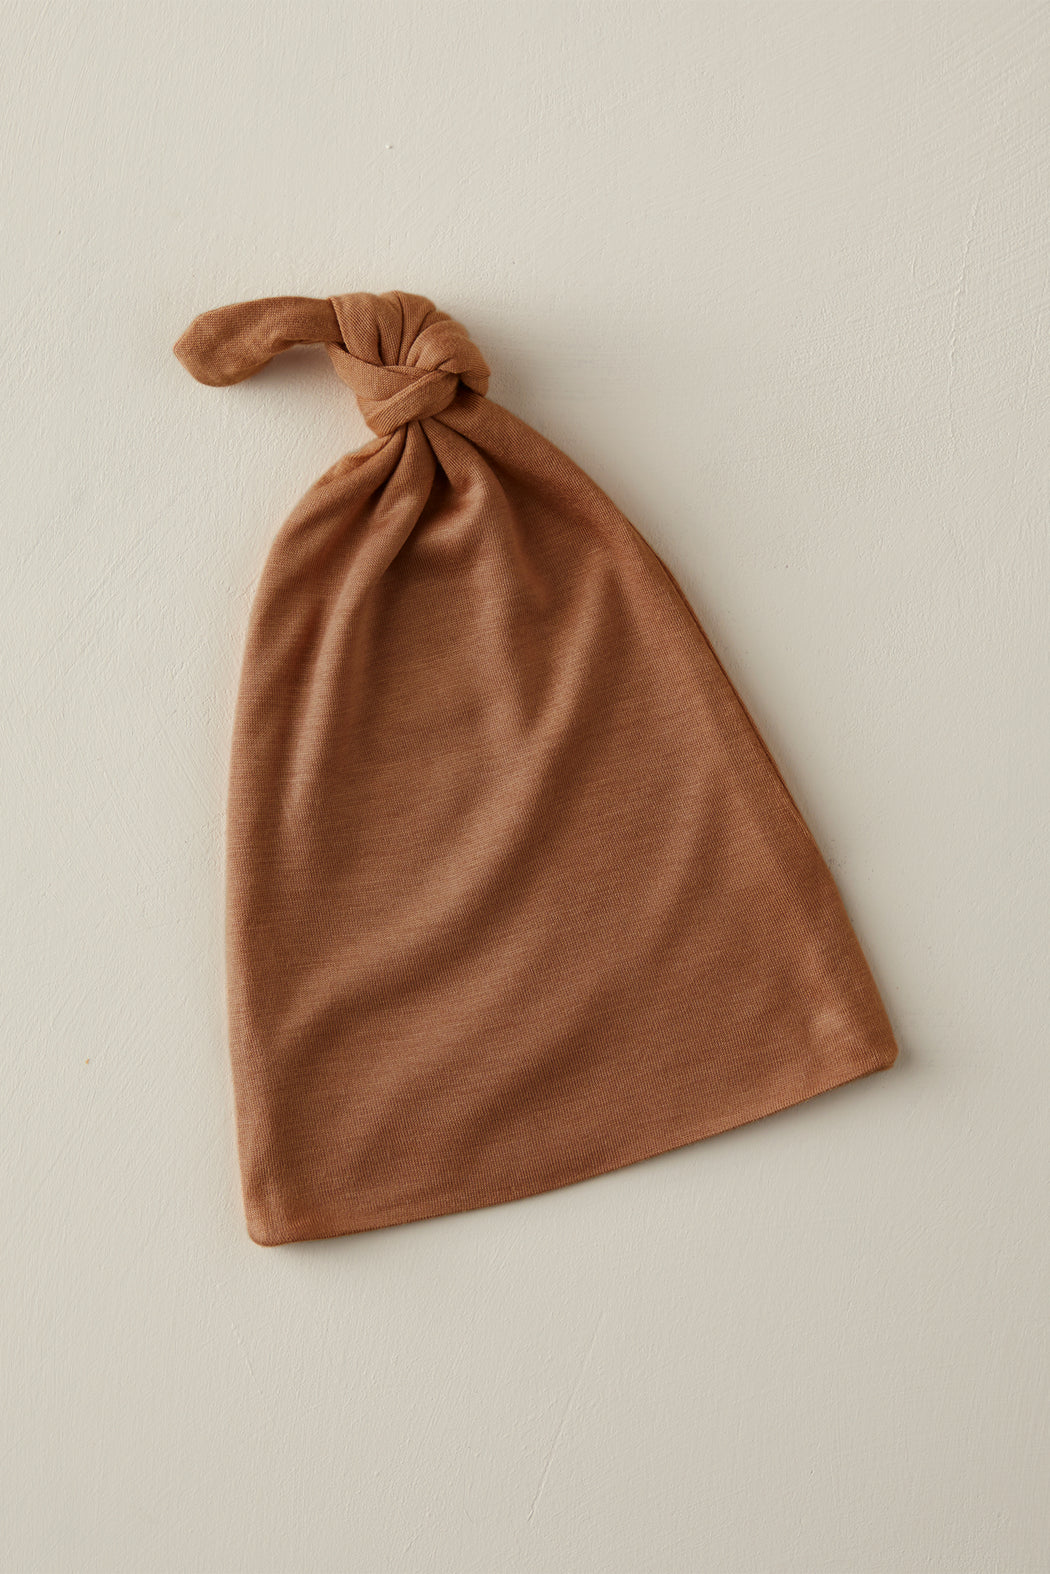 KNOTTED HAT - Cinnamon